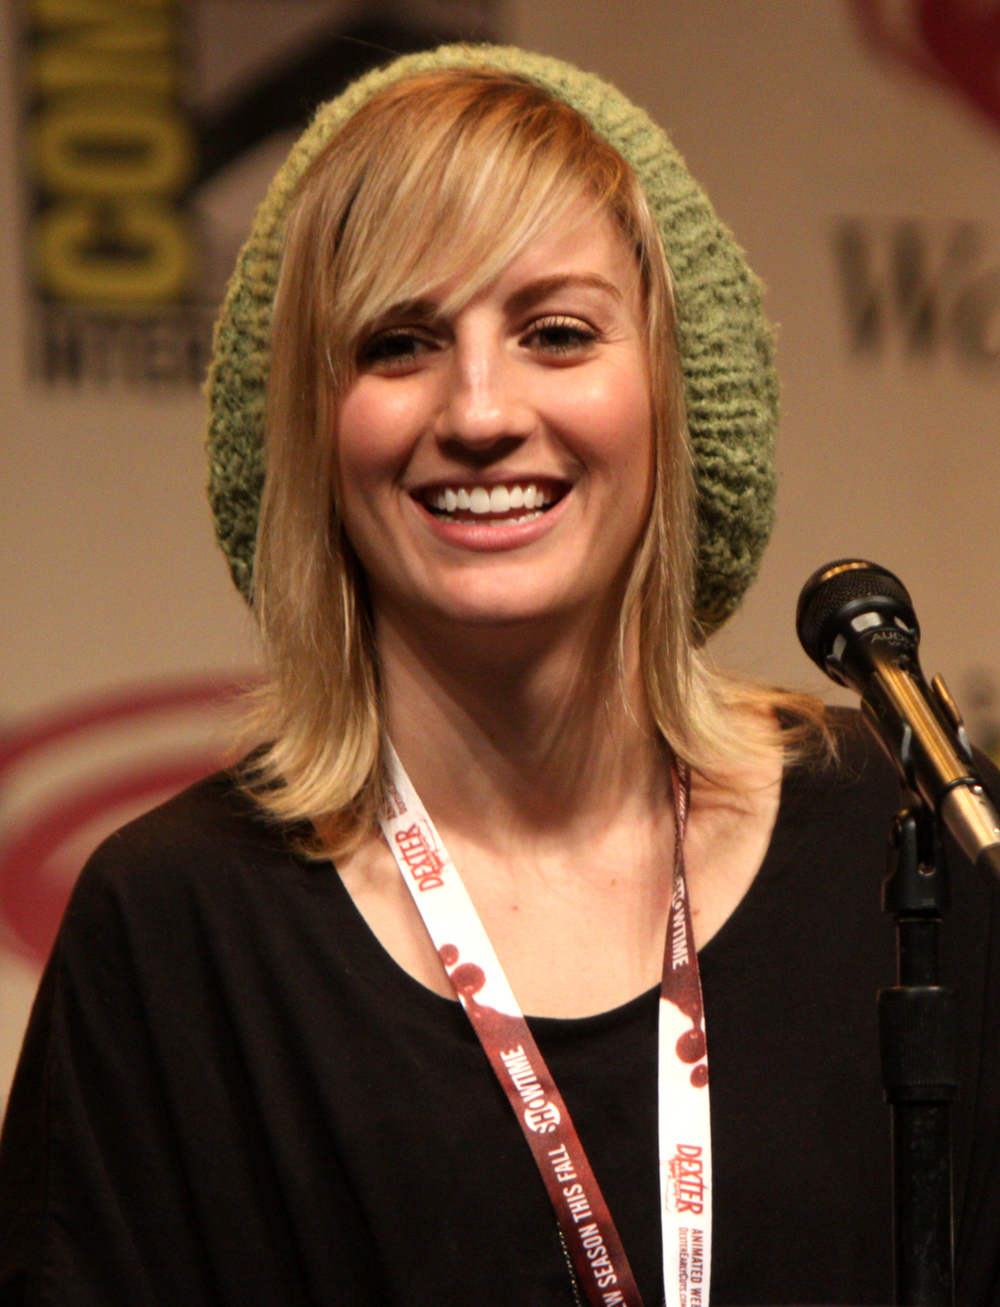 Alison Haislip, former host of G4TV. Photograph by Gage Skidmore.